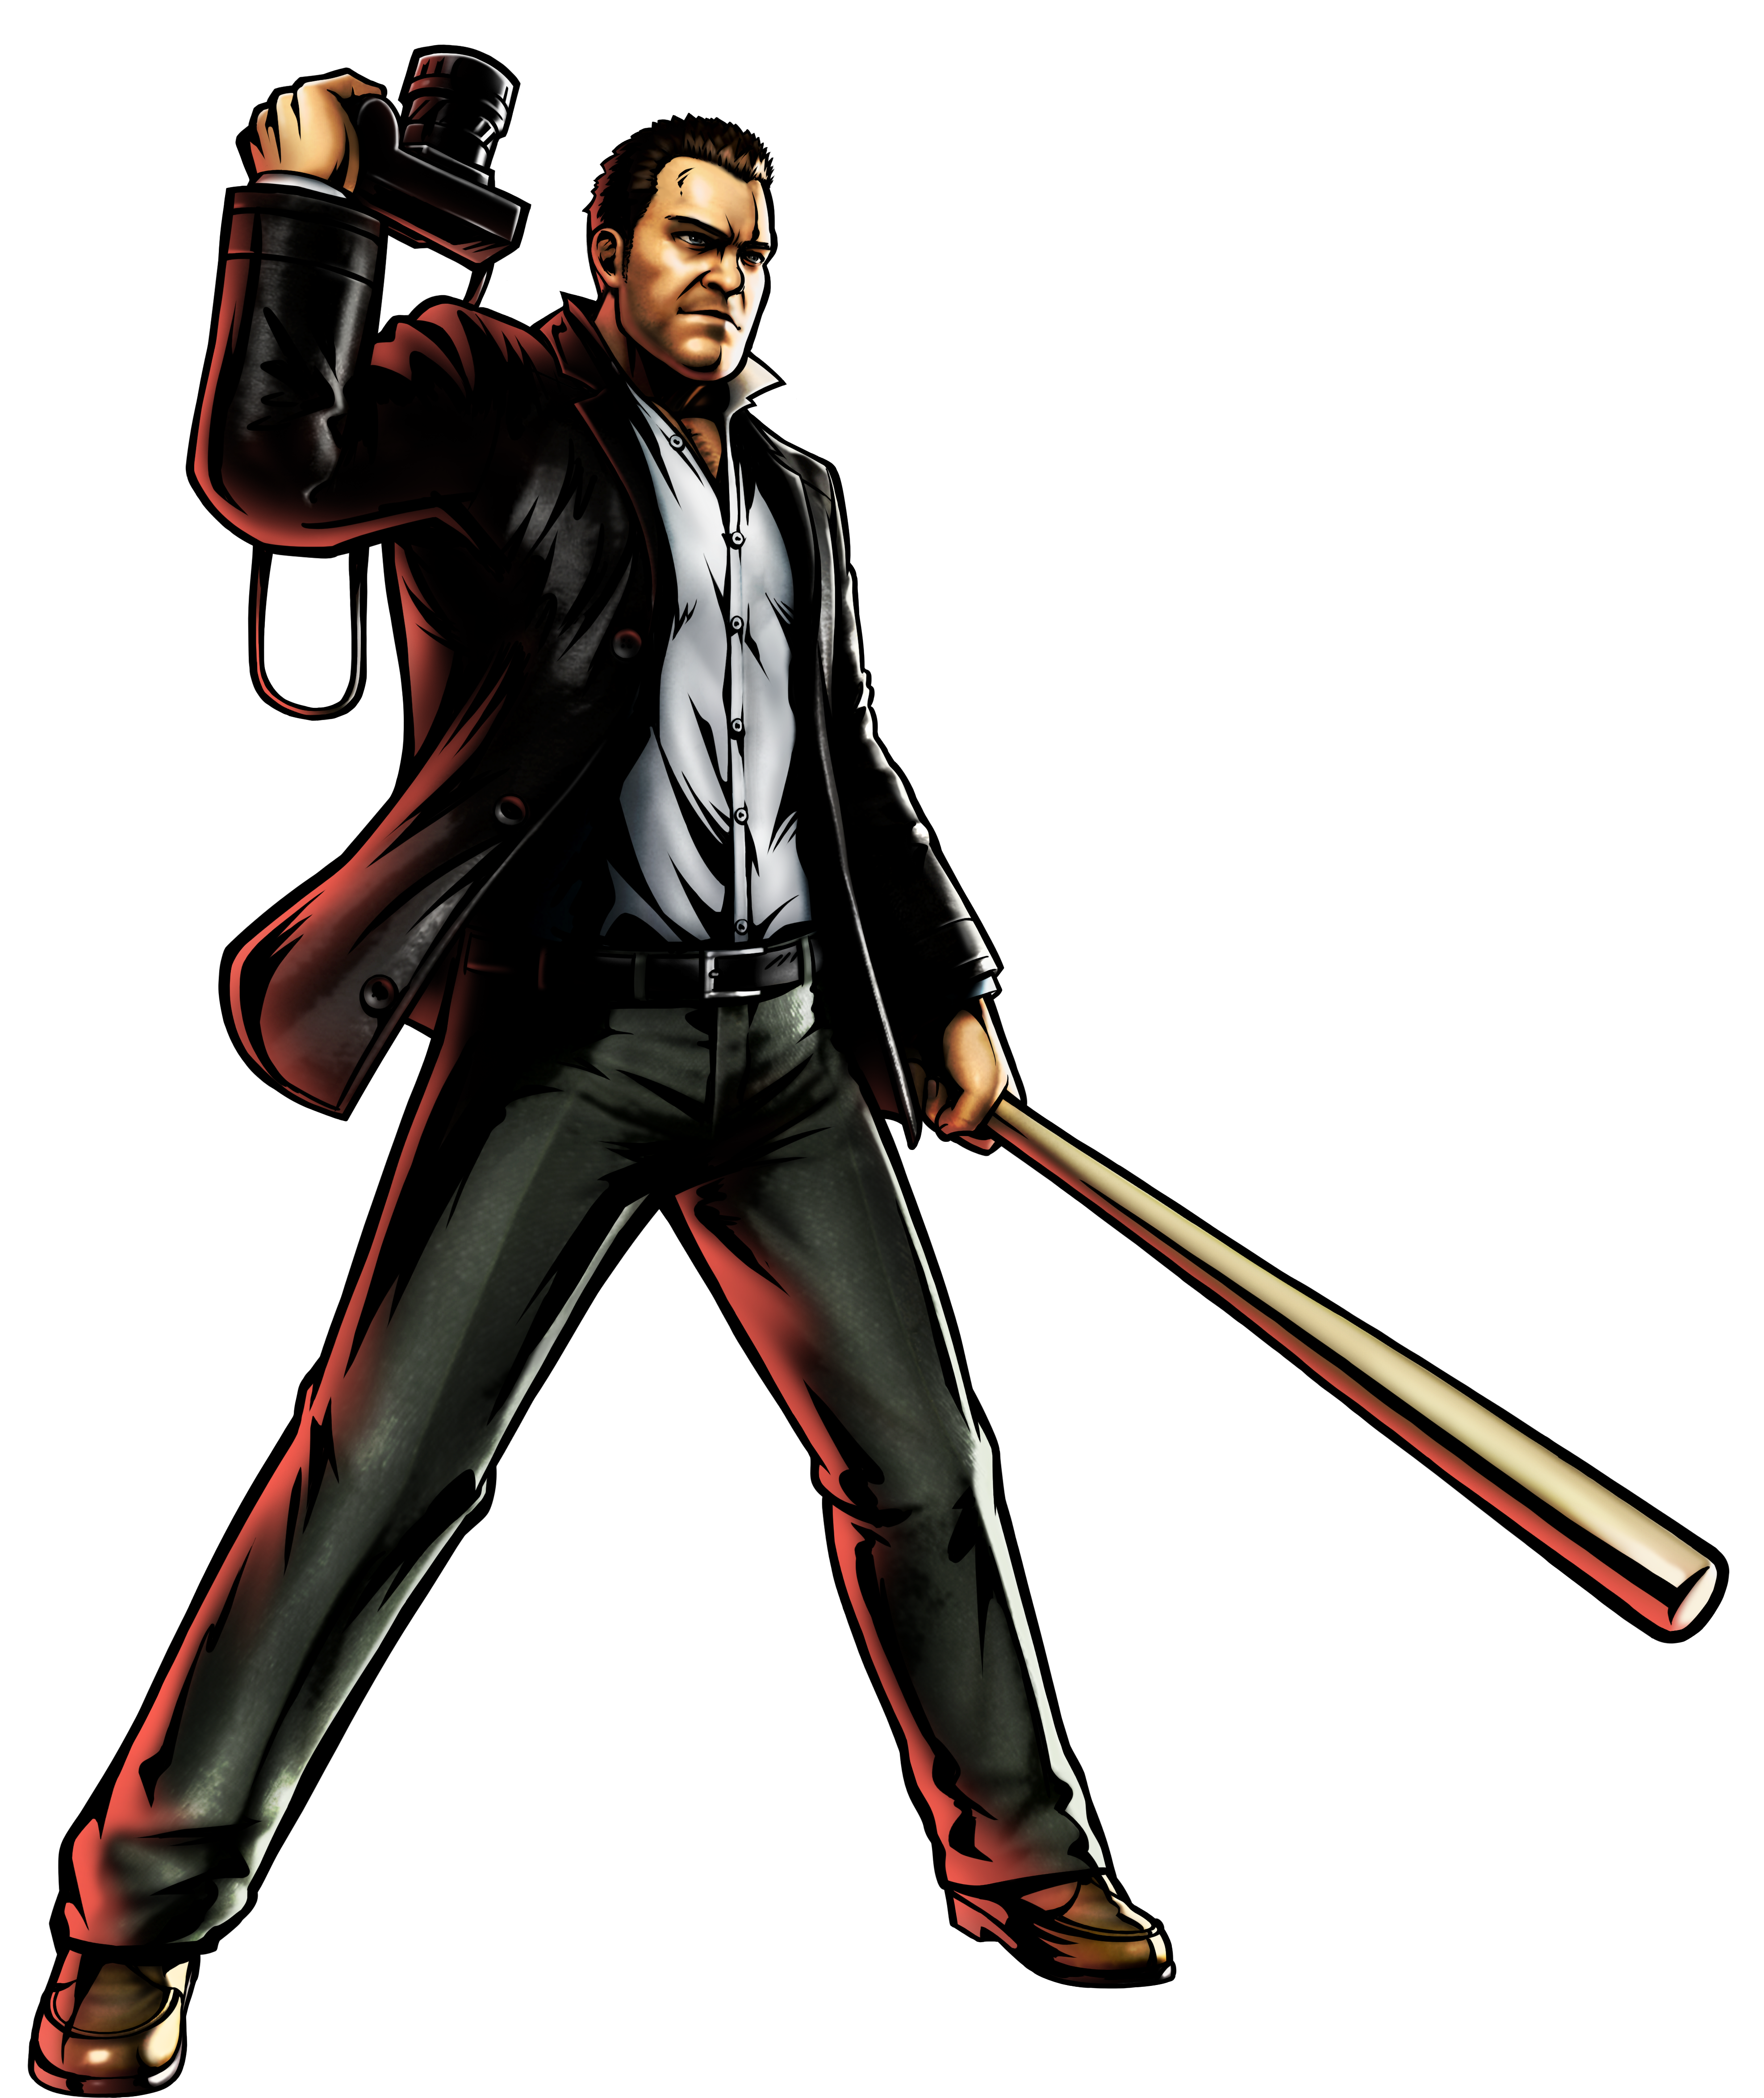 Dead rising 4 title png. Frank west from game